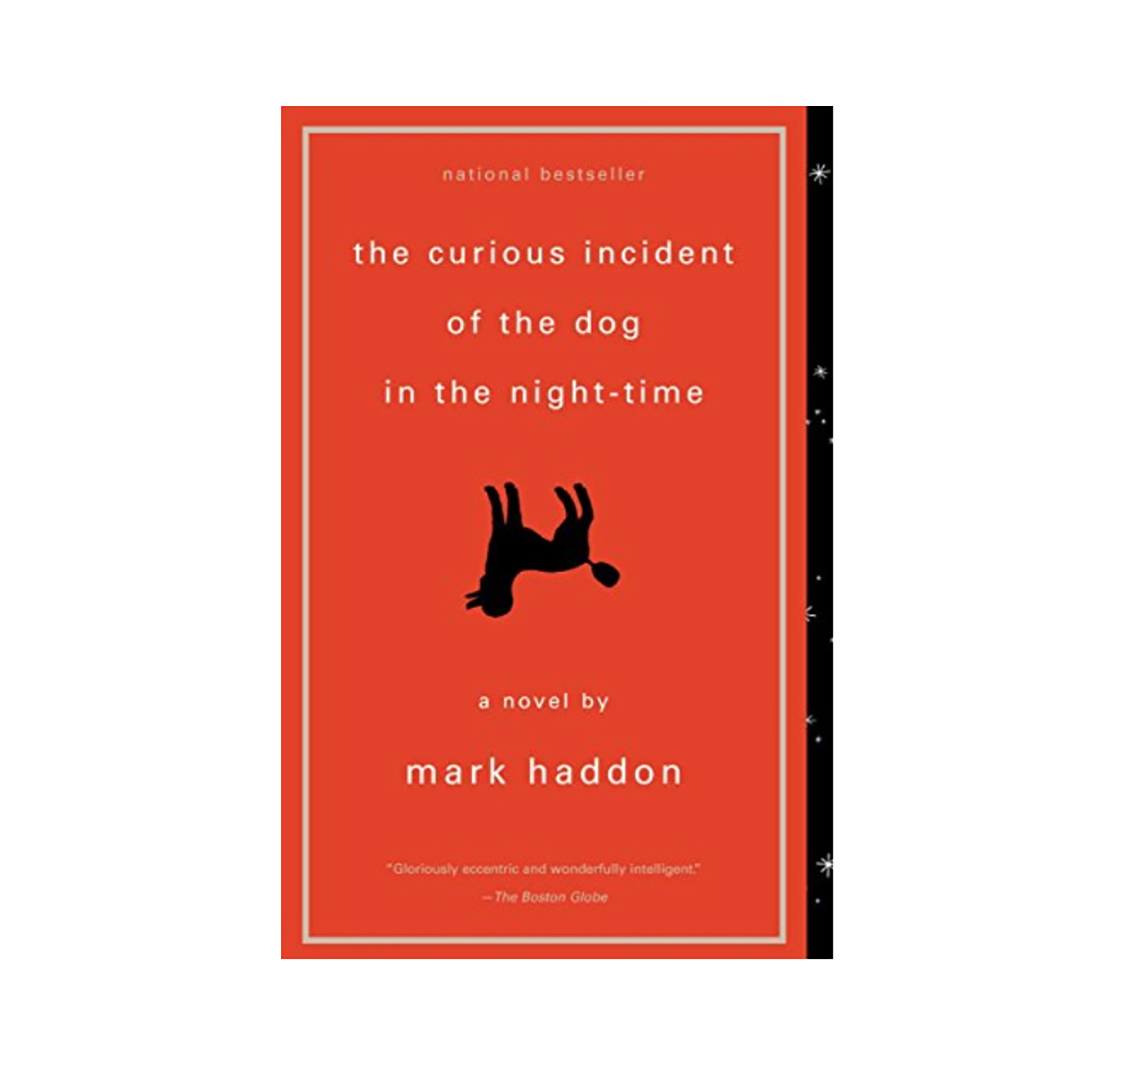 The Curious Incident of the Dog in the Night-Time – Mark Haddon